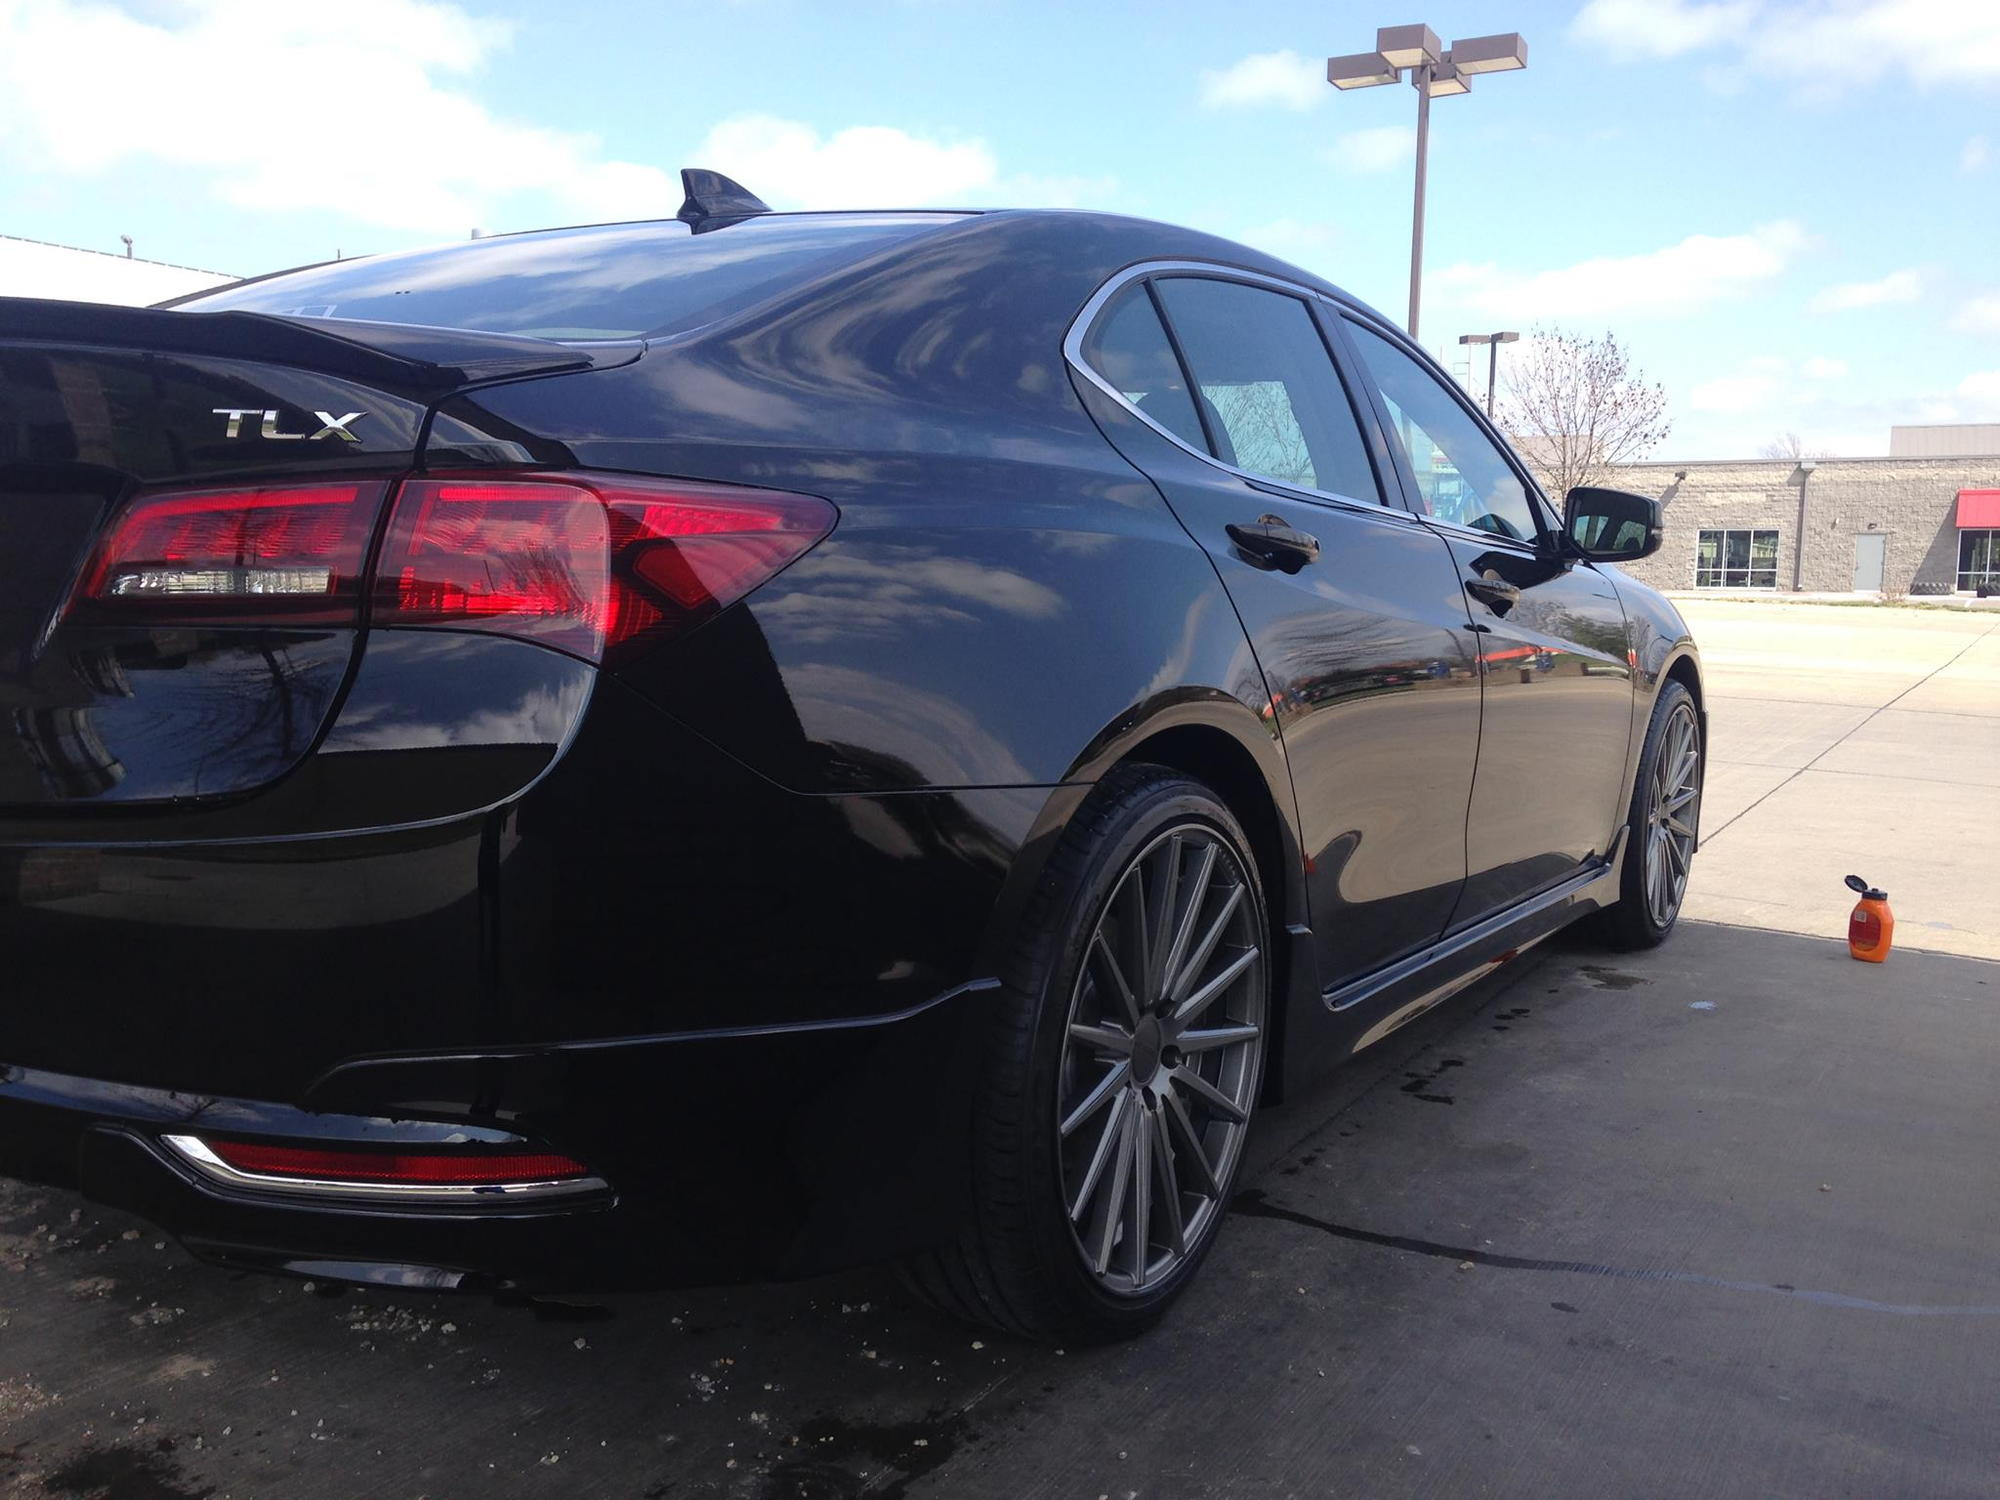 Bob Howard Used Cars >> Tlx V6 0 To 60 Time | Autos Post